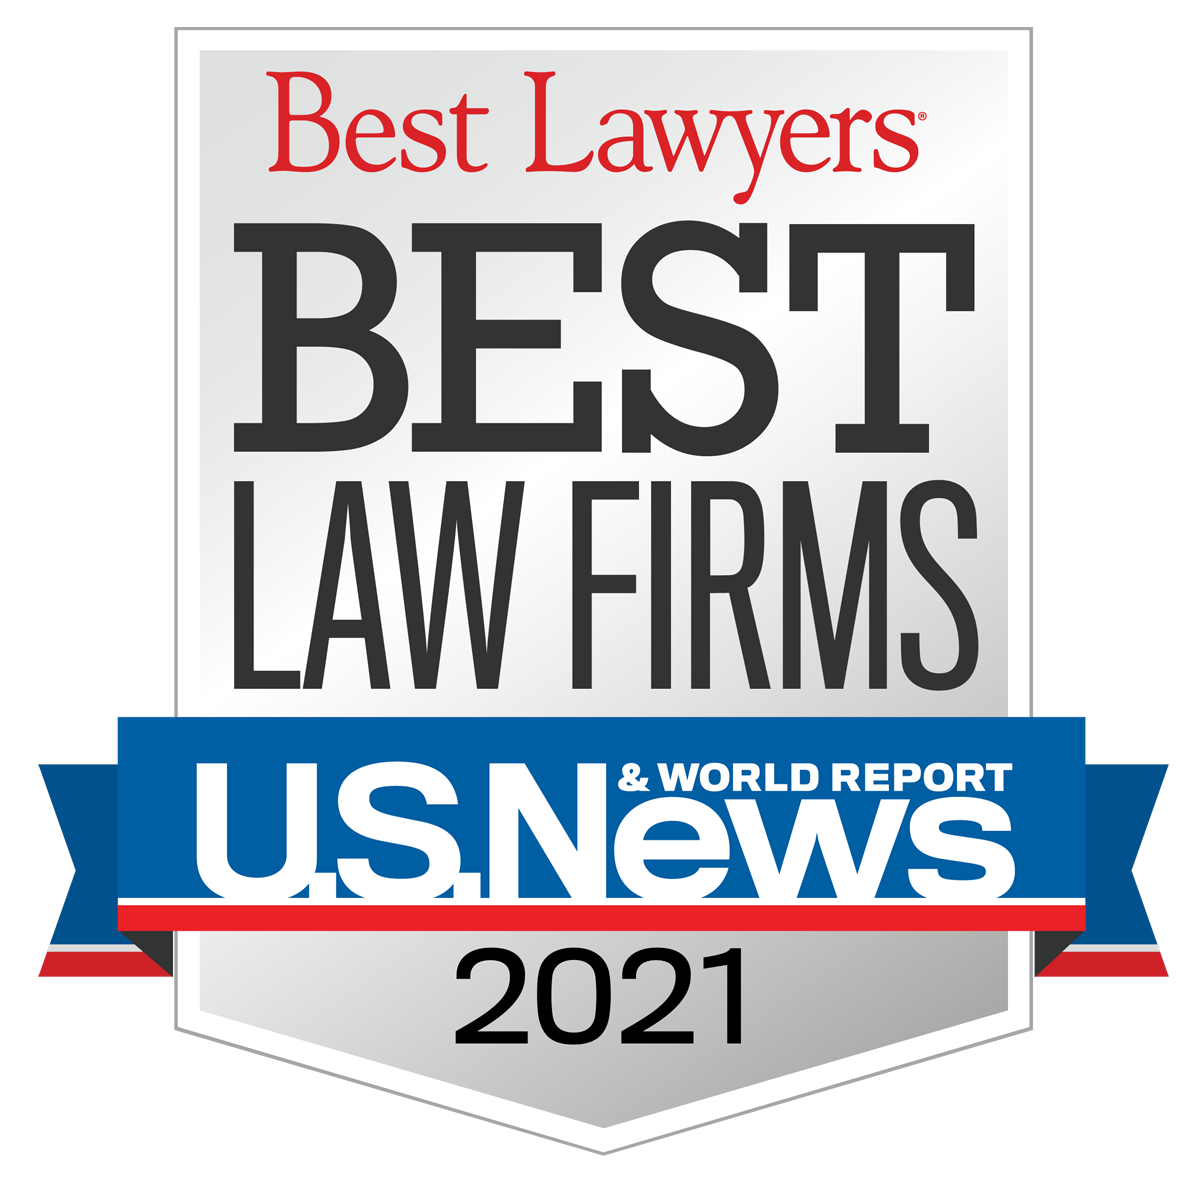 Best Lawyers Law Firms 2021